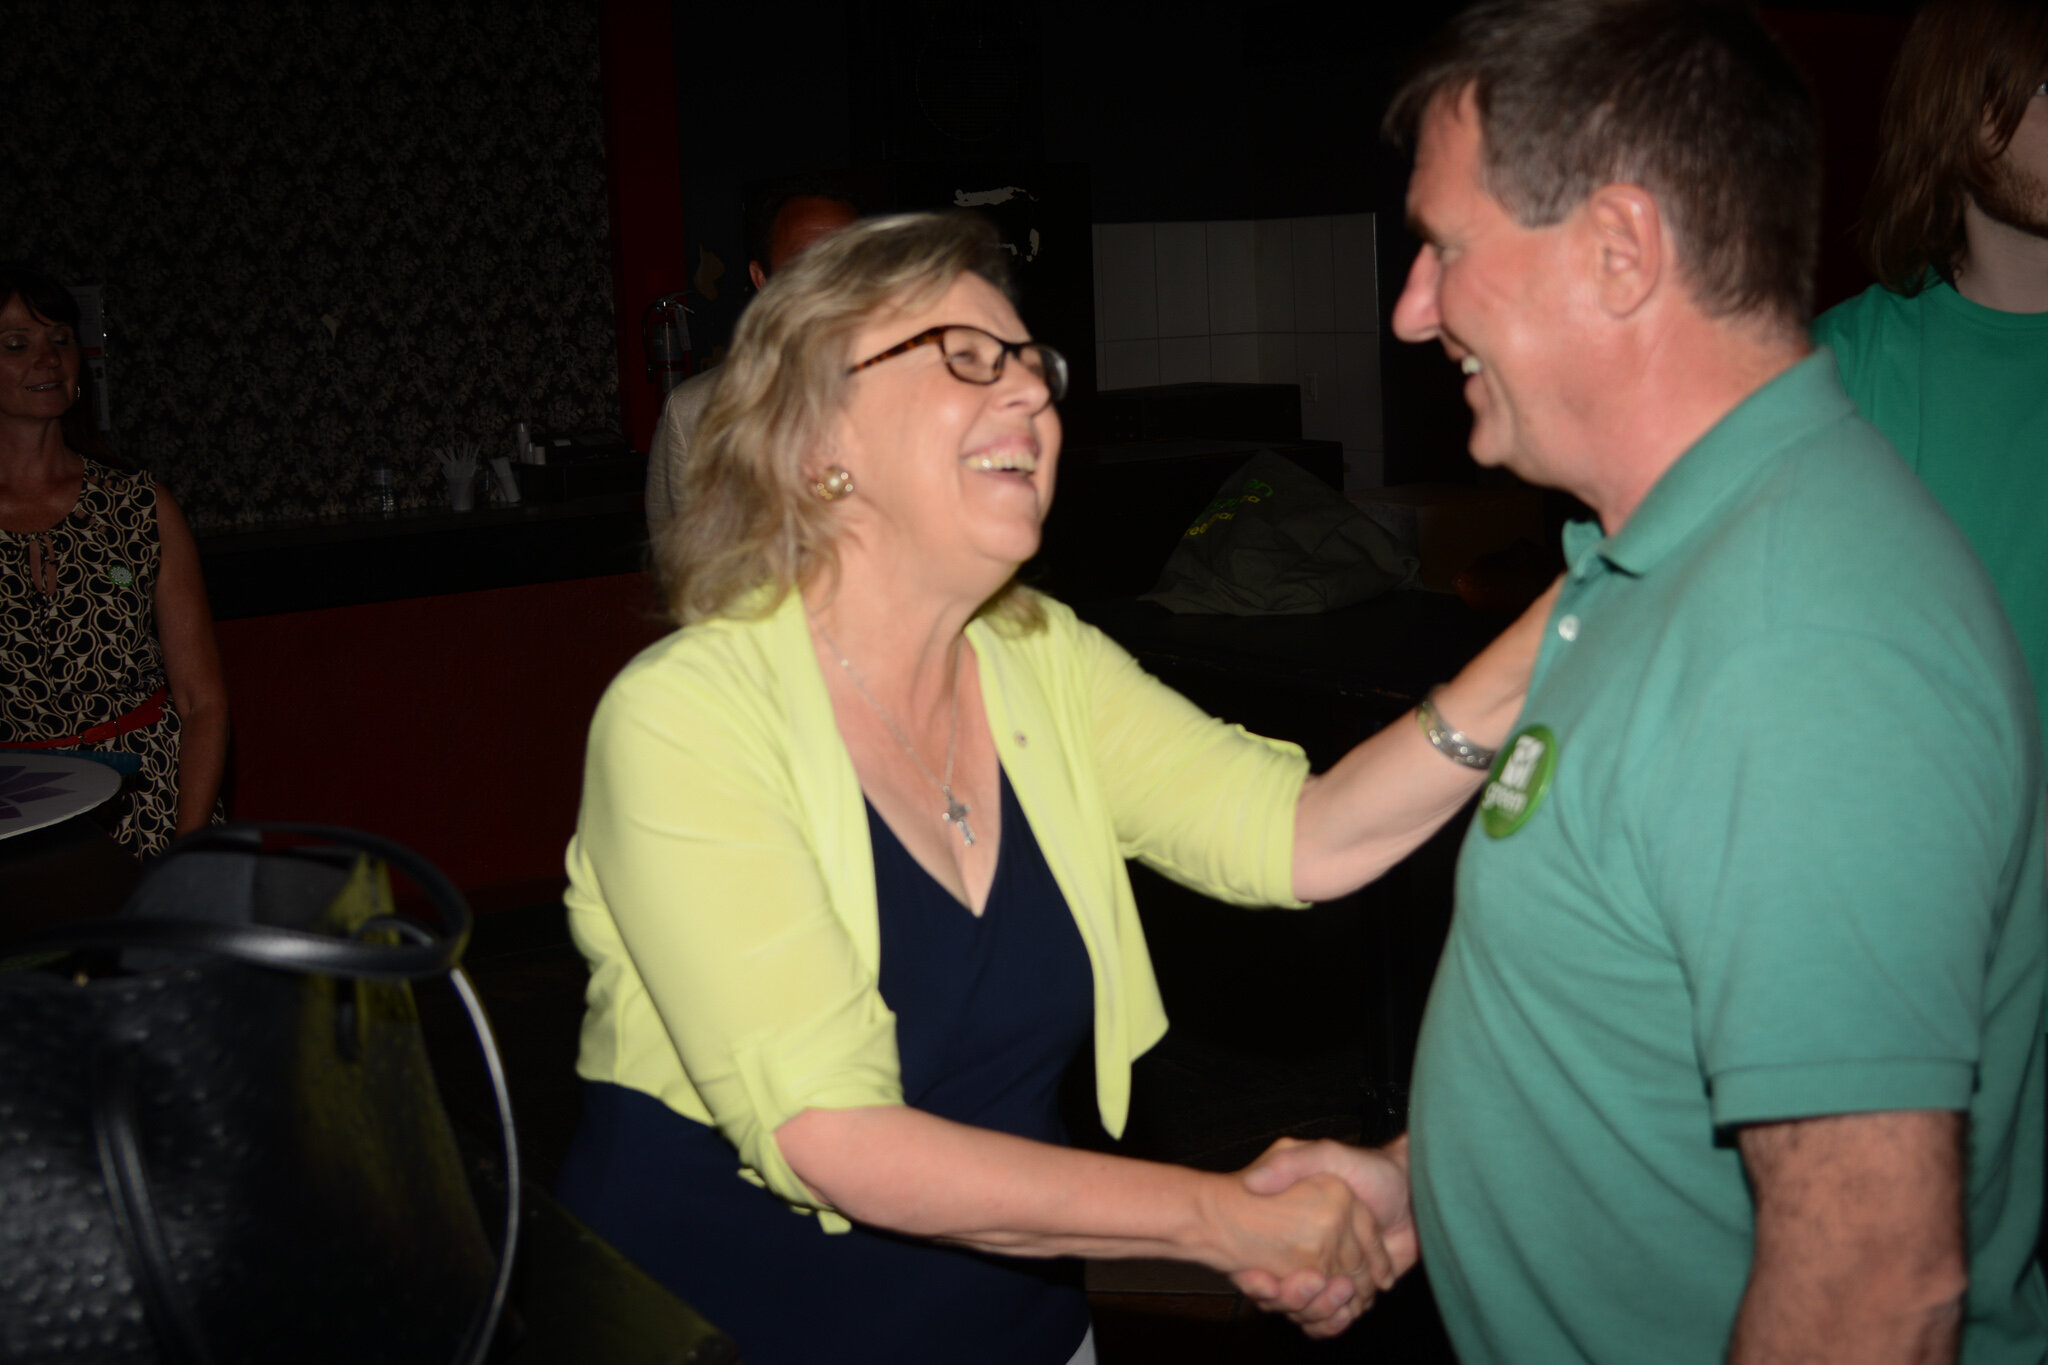 Elizabeth May and Dufferin-Caledon candidate Stefan Wiesen sharing a moment on the campaign trail.